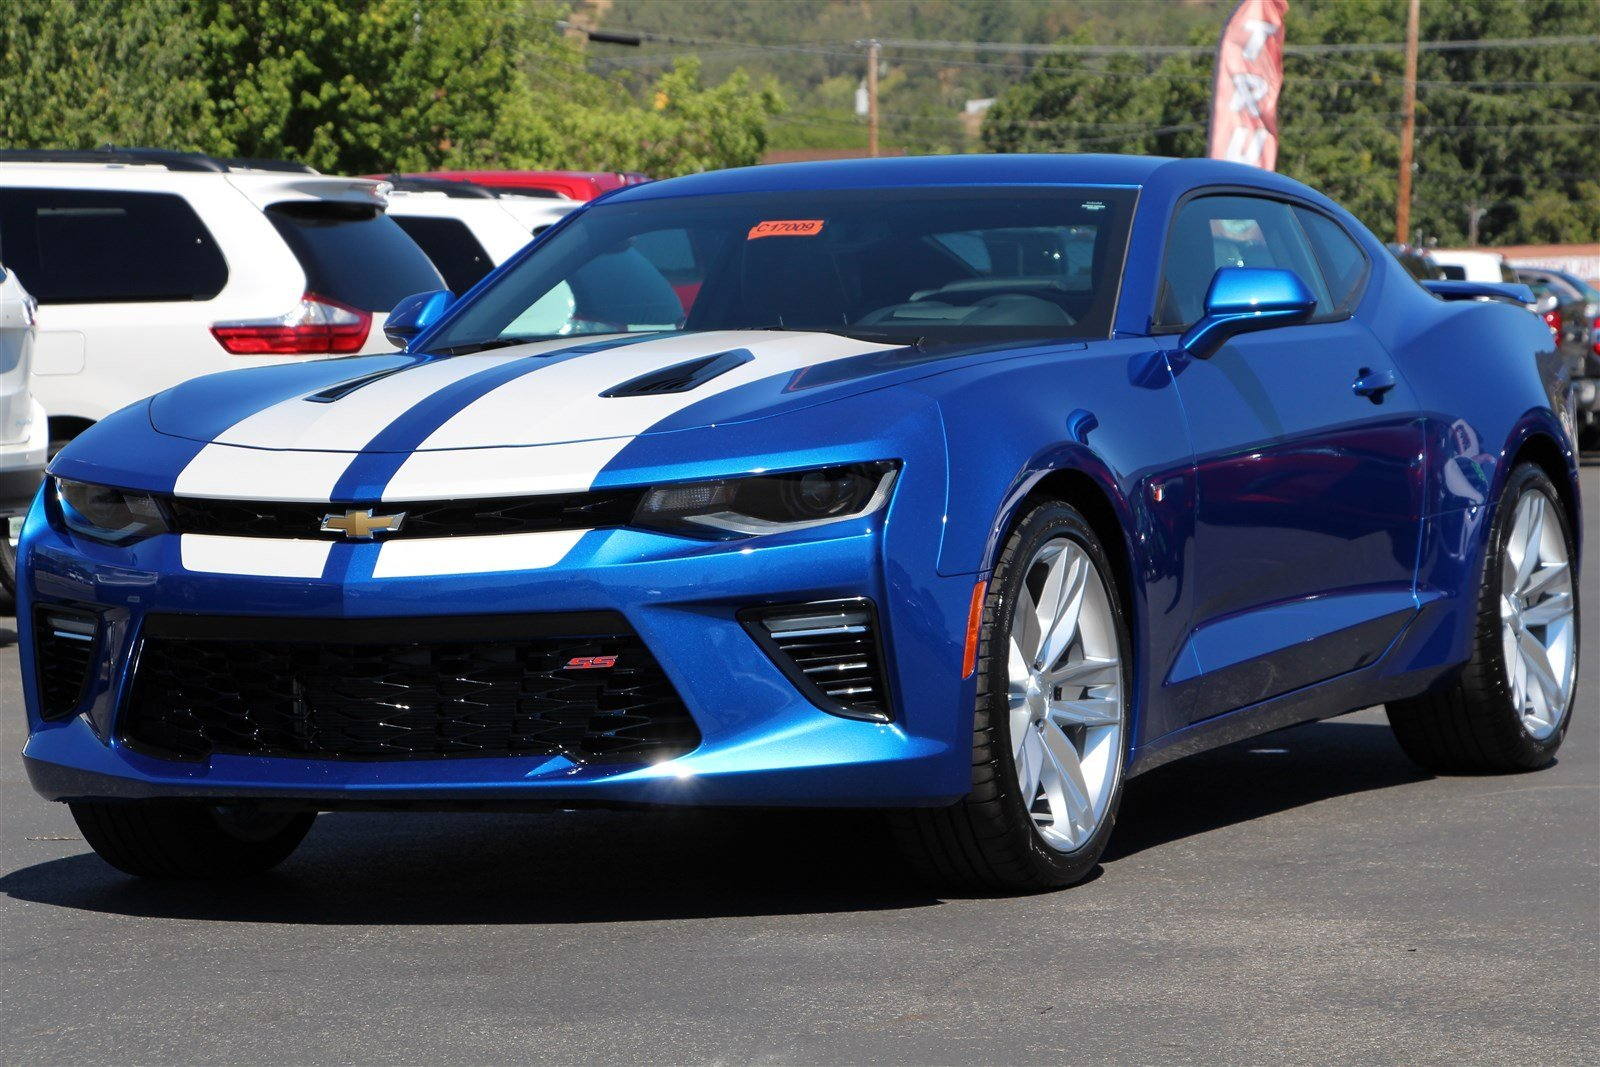 New 2017 Chevrolet Camaro SS 2dr Car in Roseburg #C17009 ...